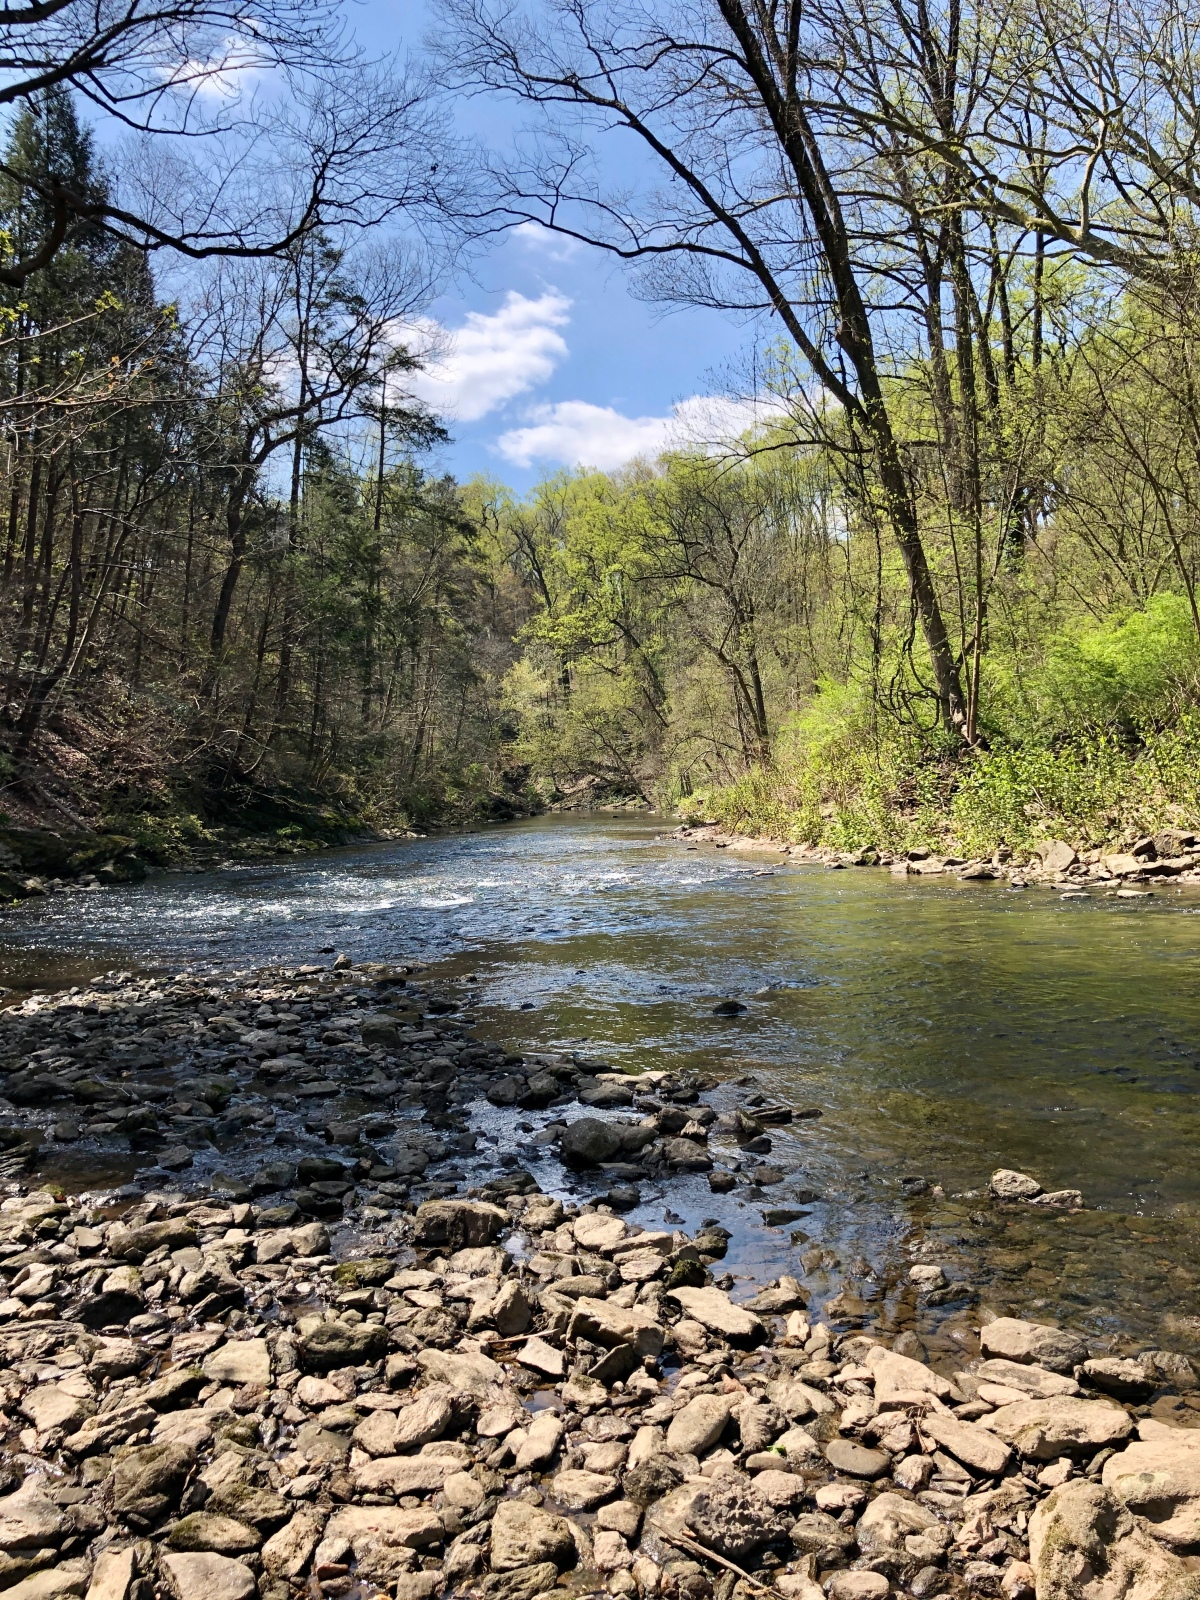 15 WITHIN 15: Fishing the Wissahickon